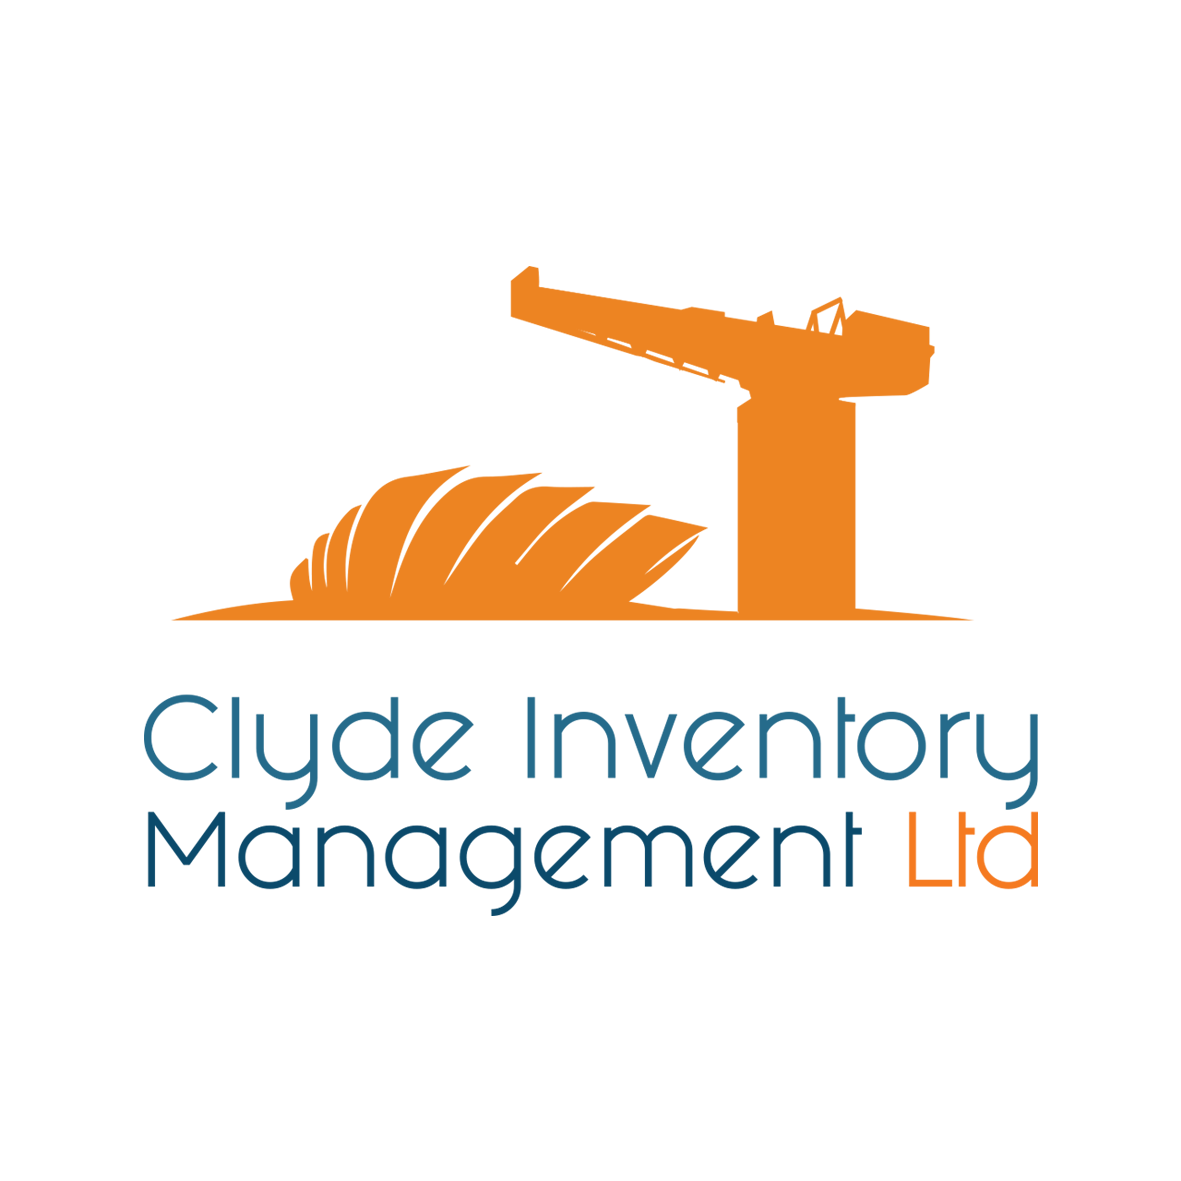 Clyde Inventory Management Ltd